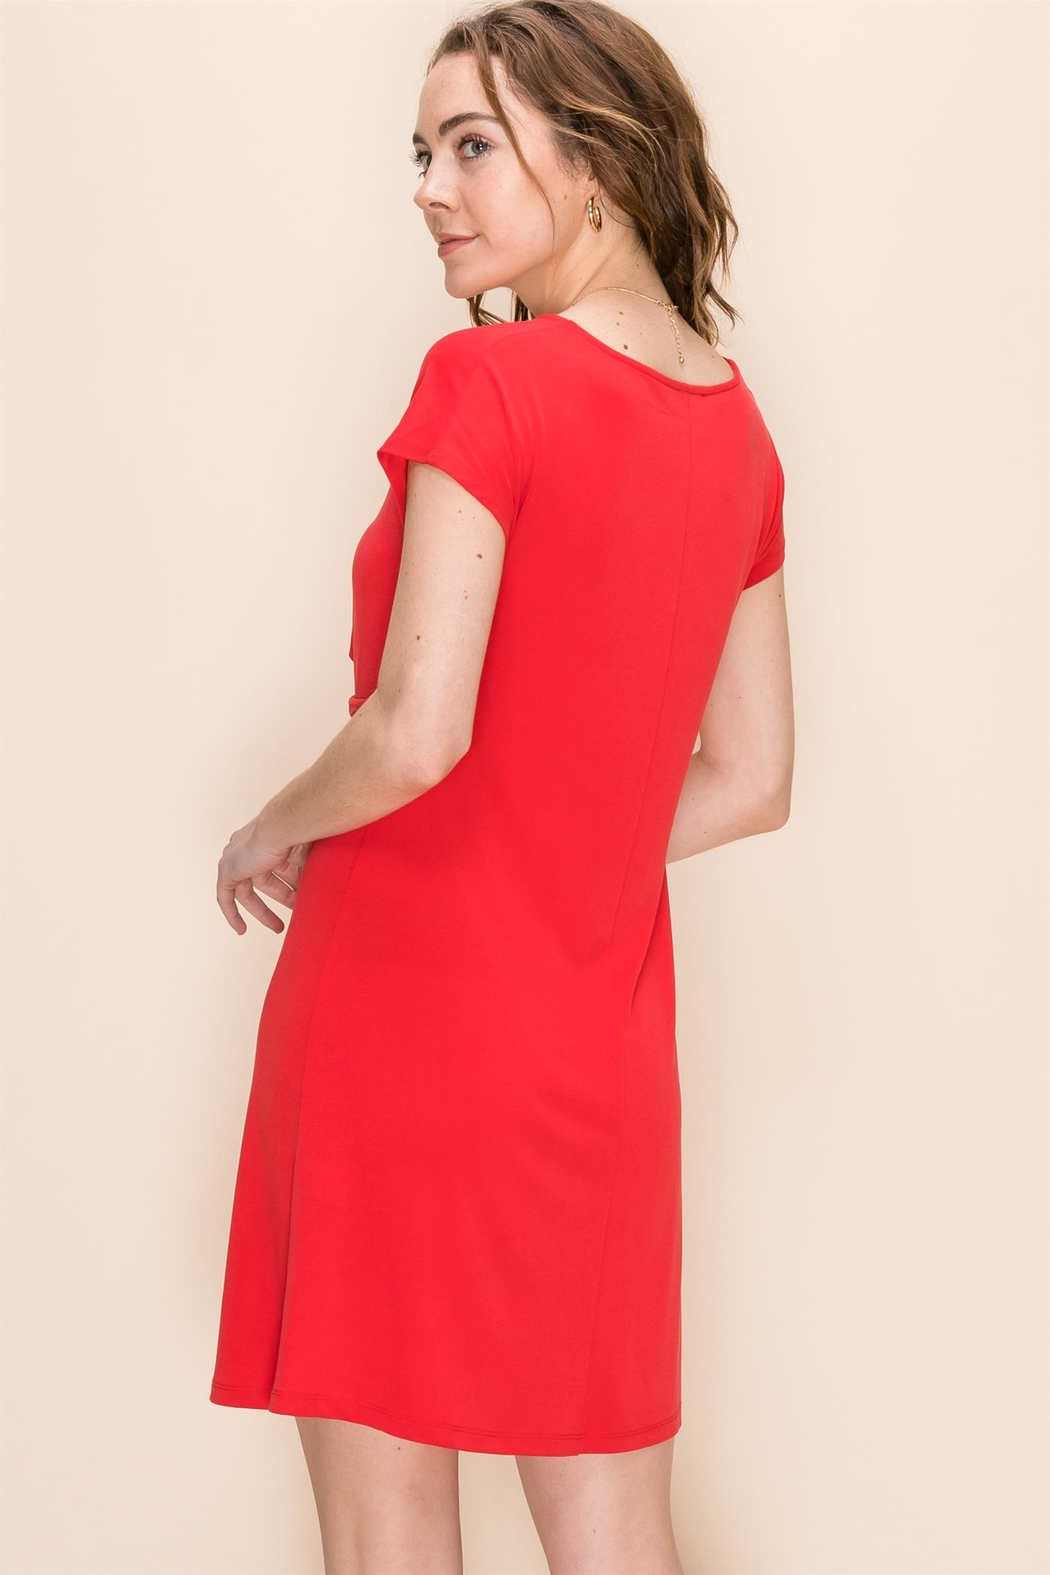 Double Zero Red Hot Summer Dress - Main Image